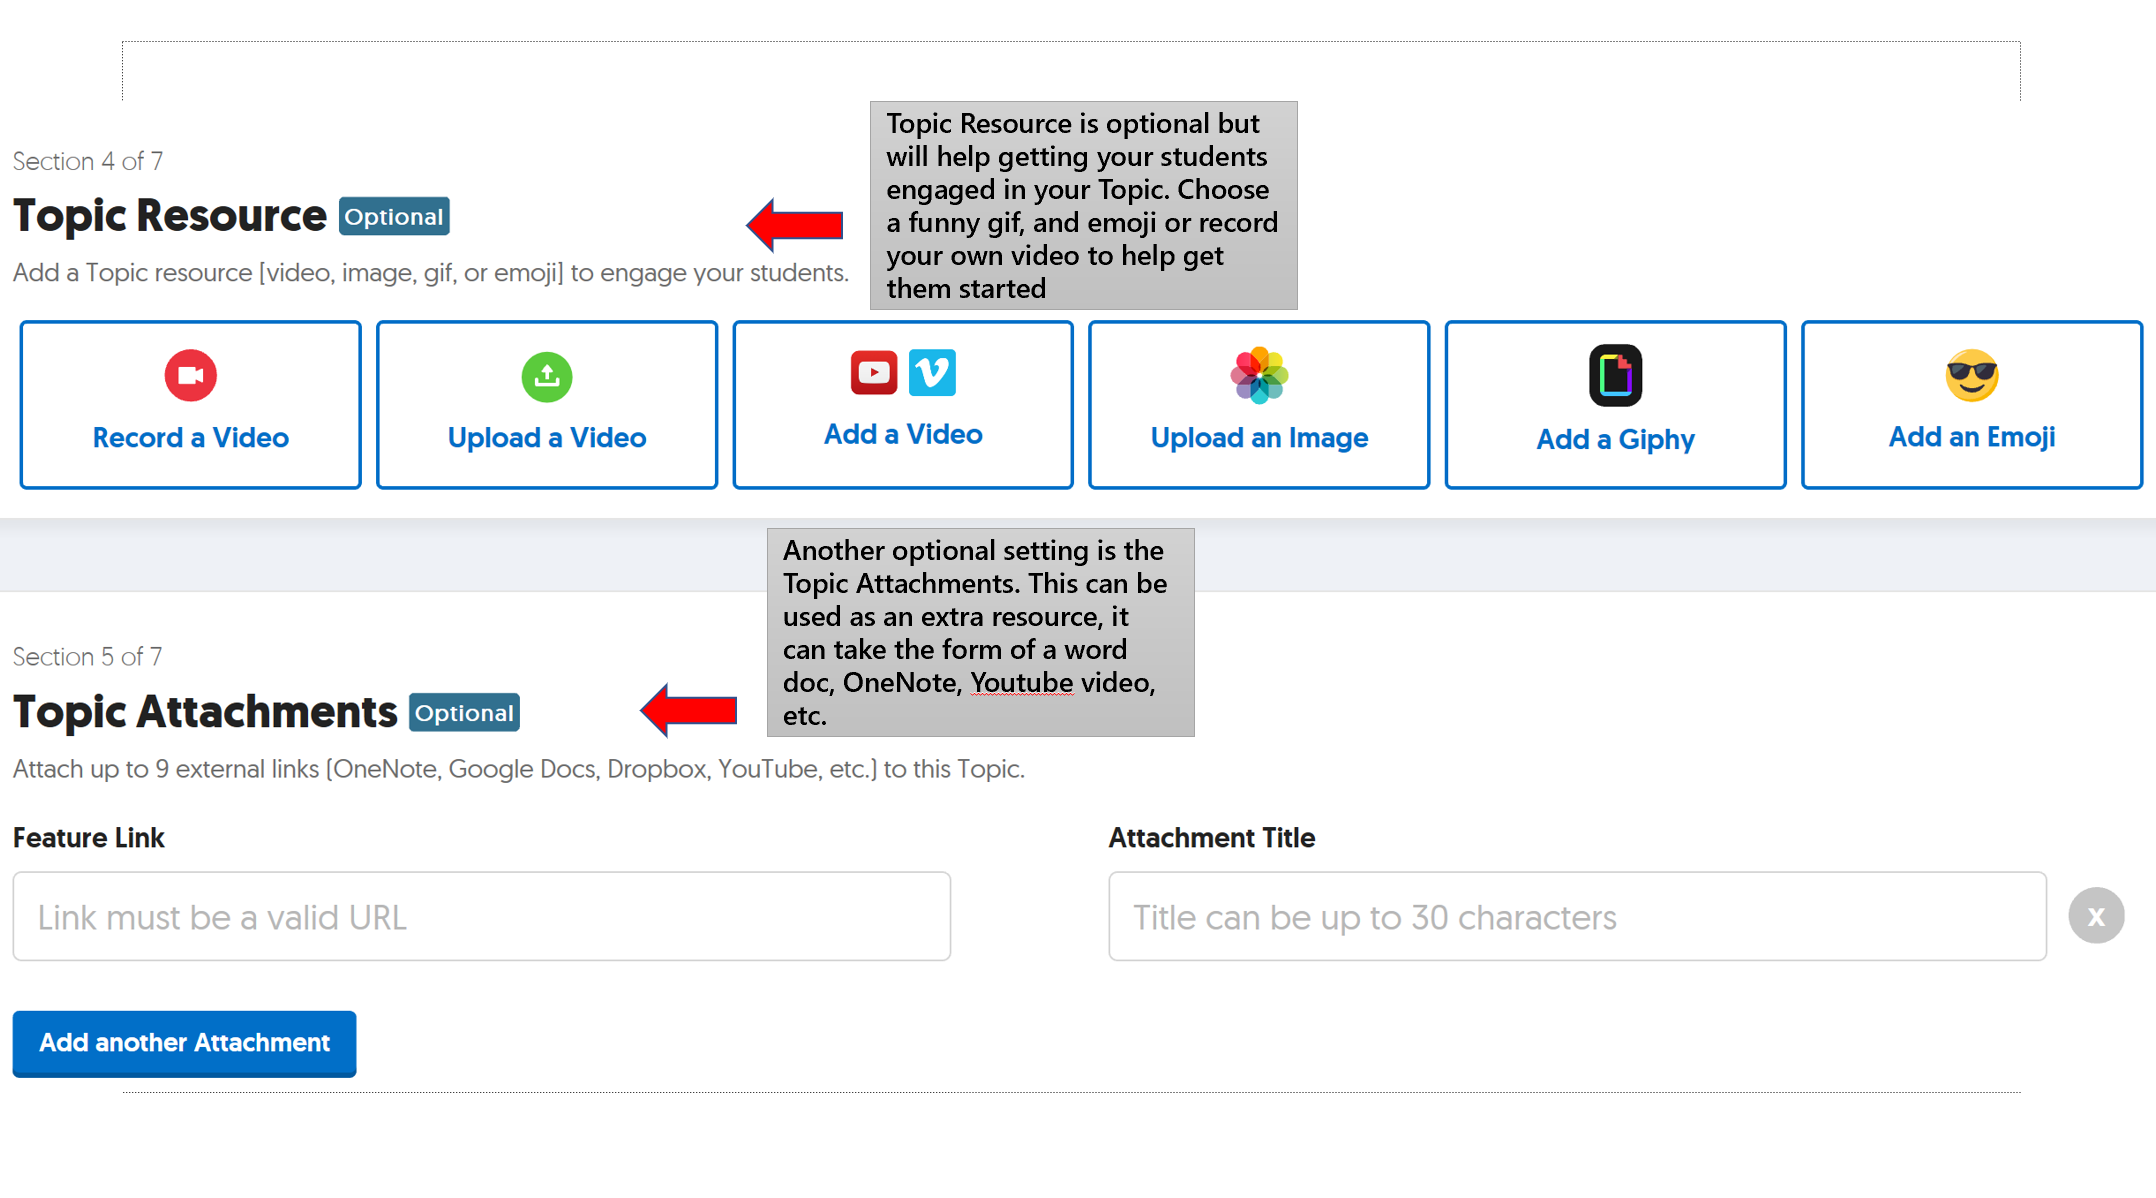 An image of the Flipgrid Topic Resource interface